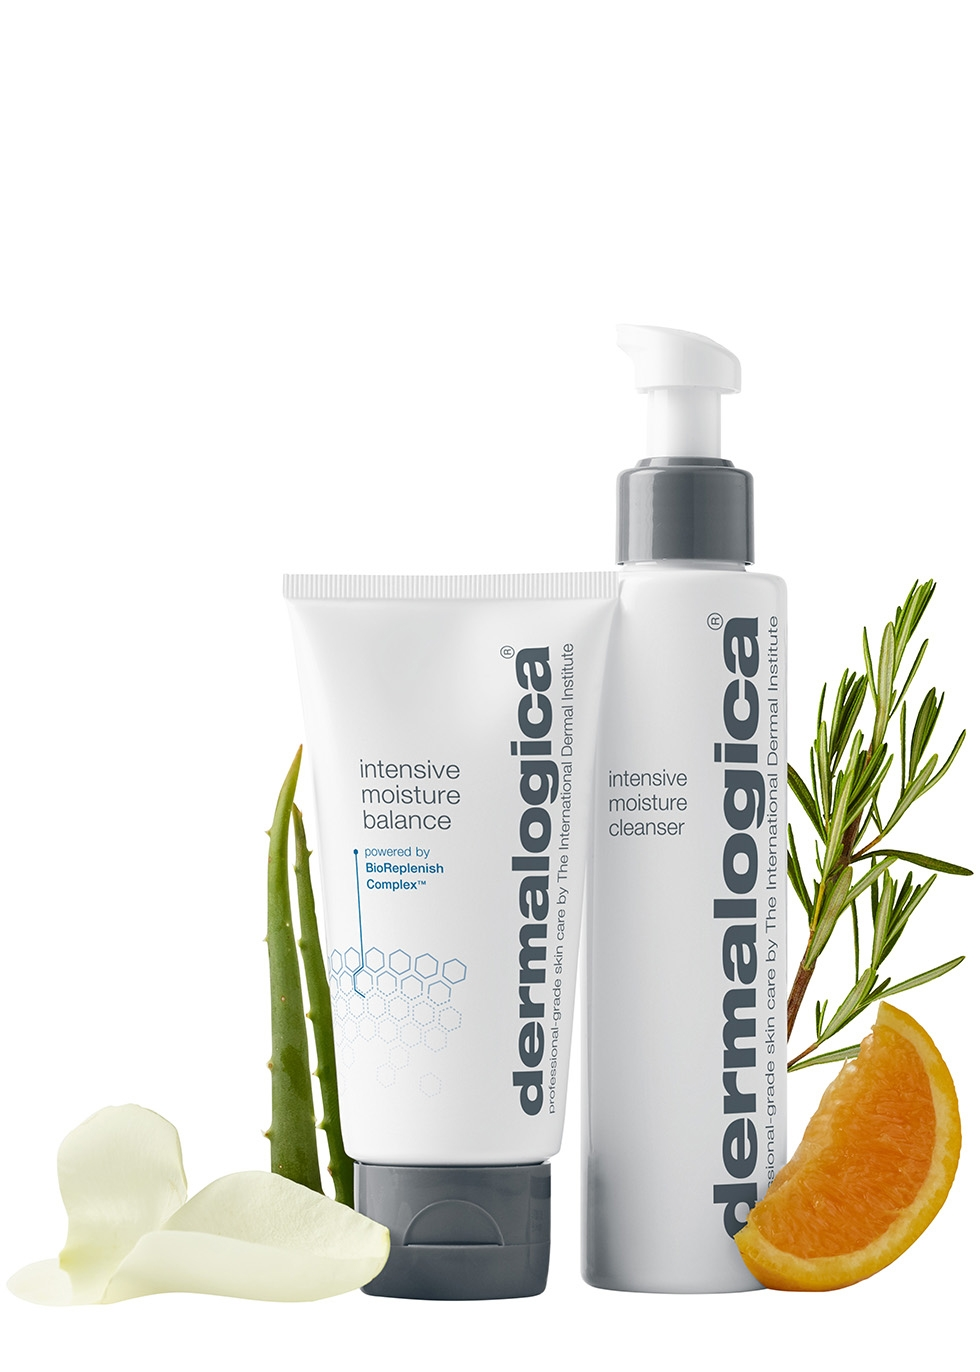 Intensive Moisture Cleanser 150ml - Dermalogica